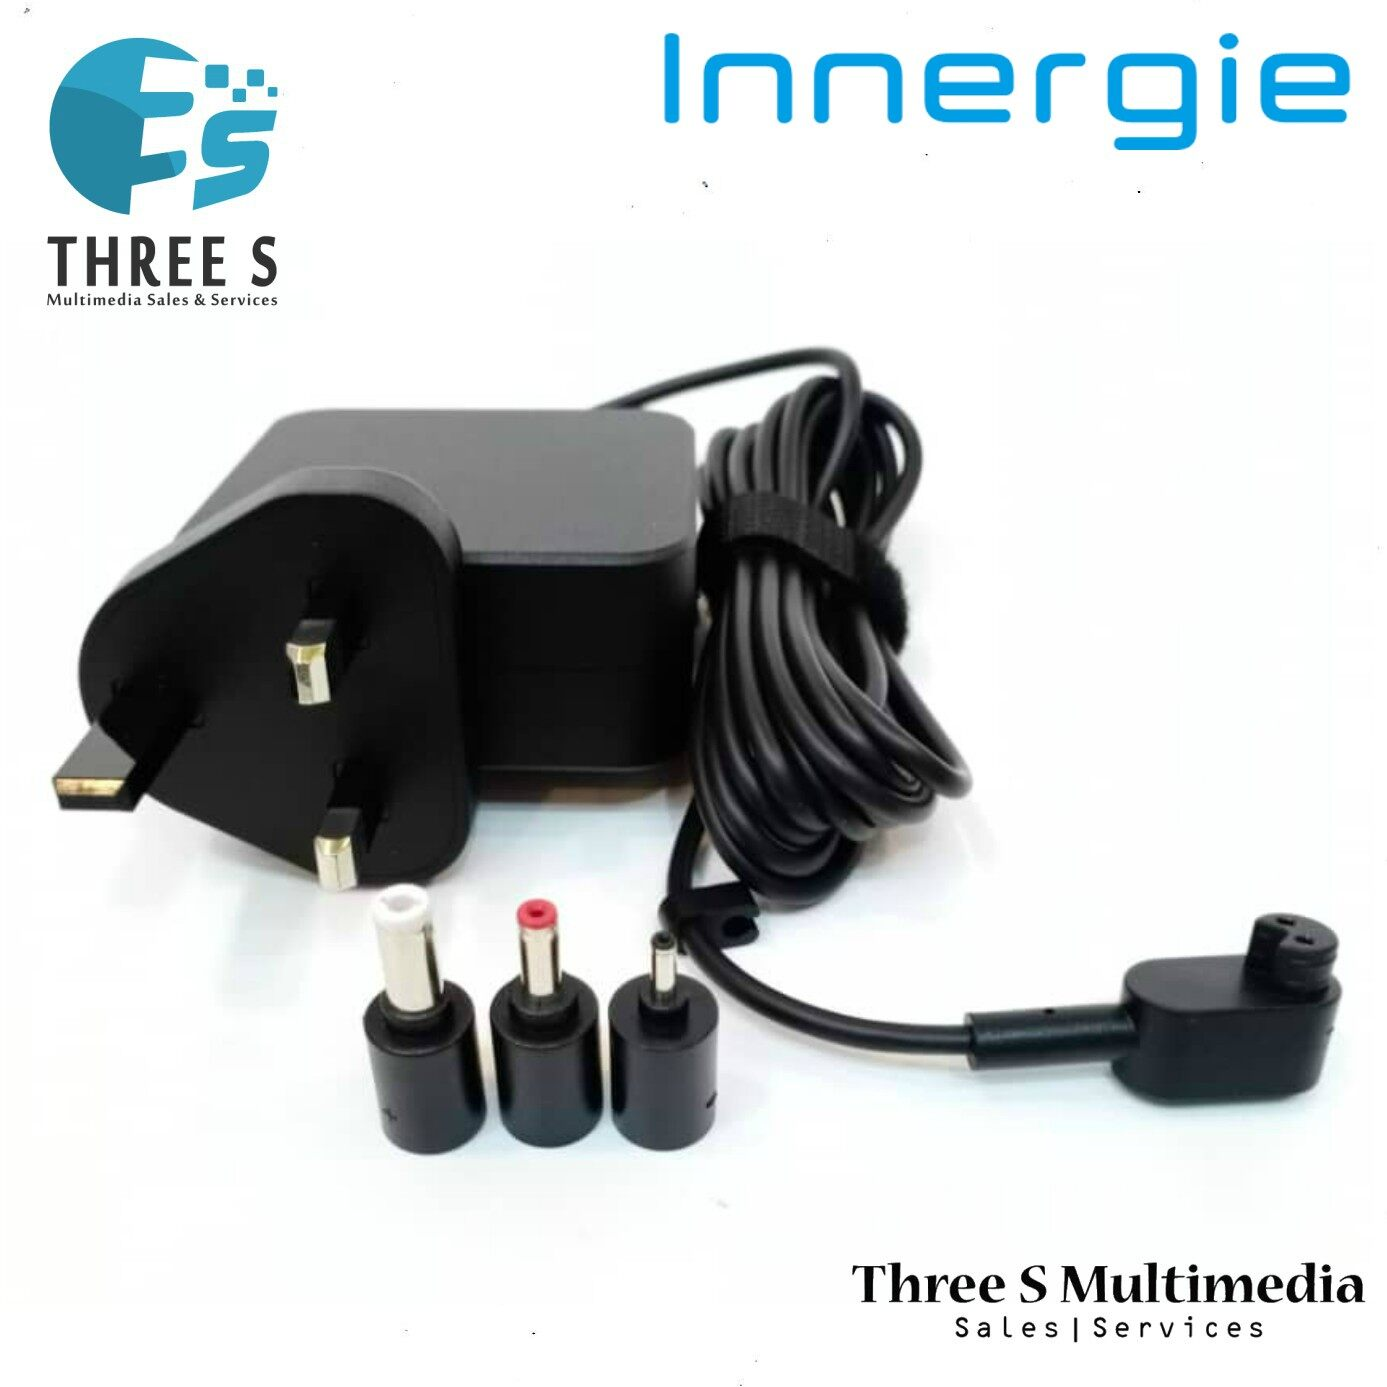 Innergie 65W Laptop Power Adapter Universal Compatibility with Built-in Cable For ASUS A Brand Of DELTA